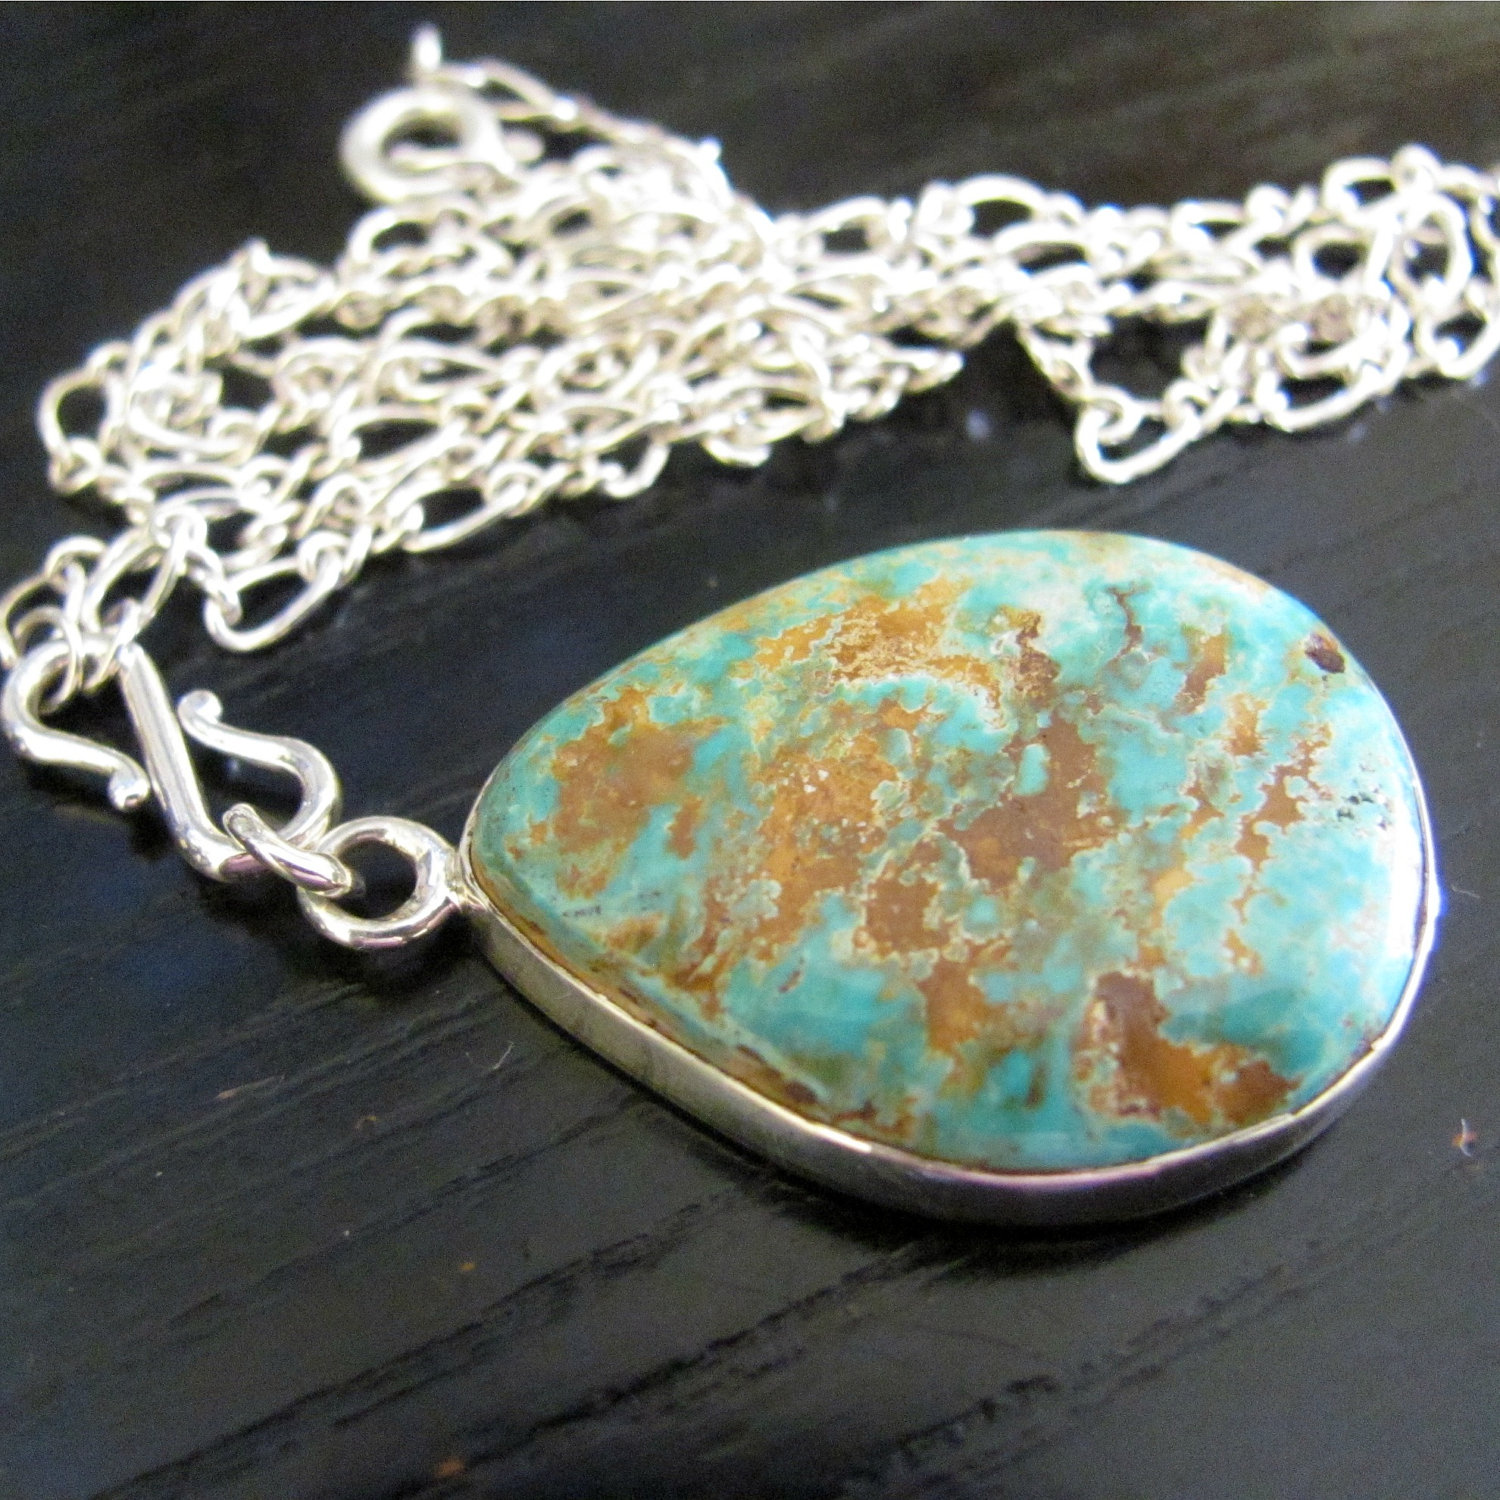 Cripple Creek Turquoise from Cripple Creek Colorado